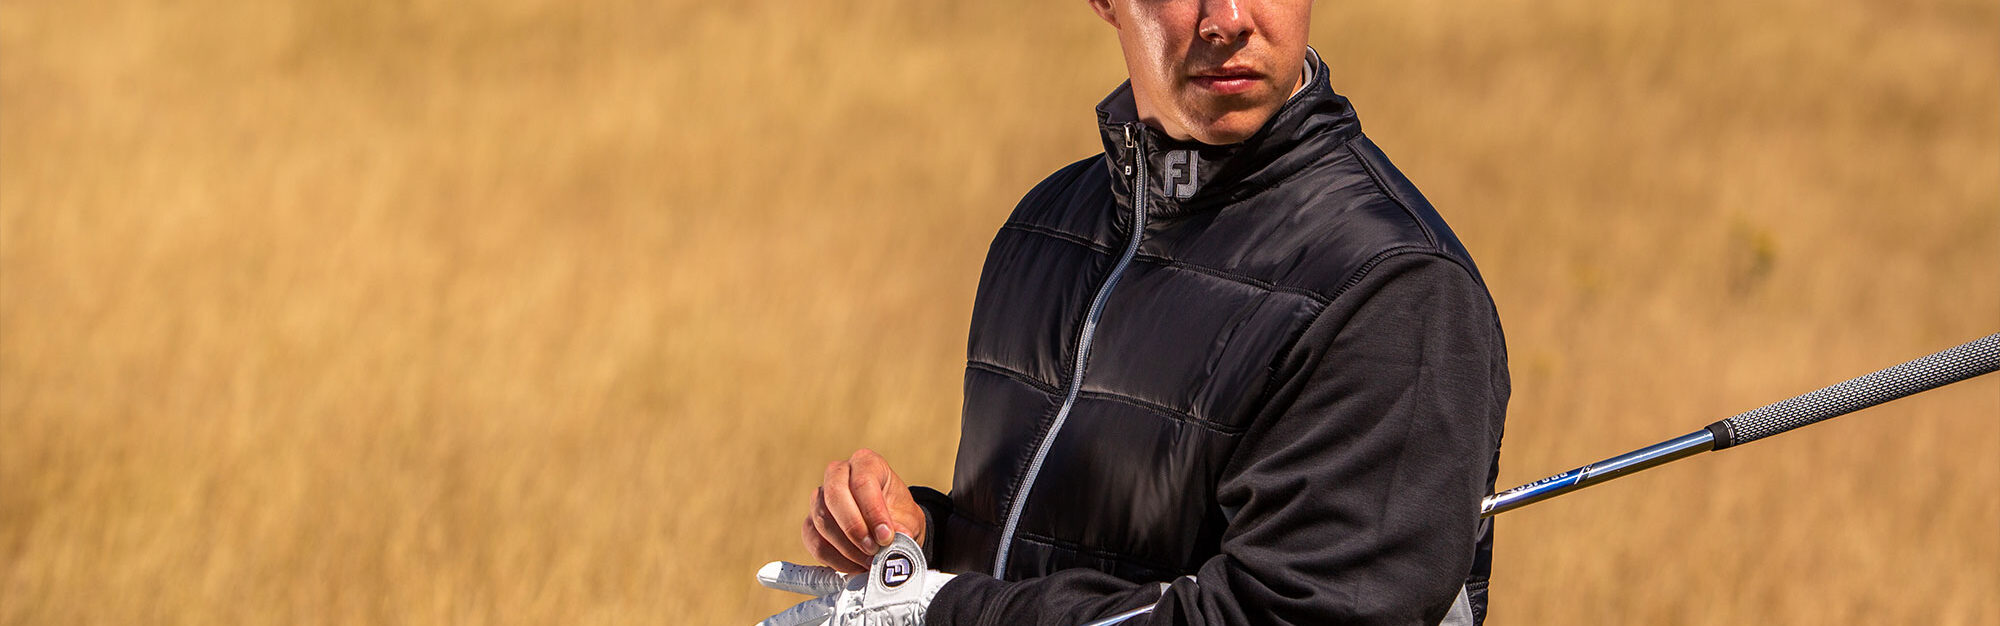 Get ready for everything winter has to throw at you with FootJoy's latest cold-weather range